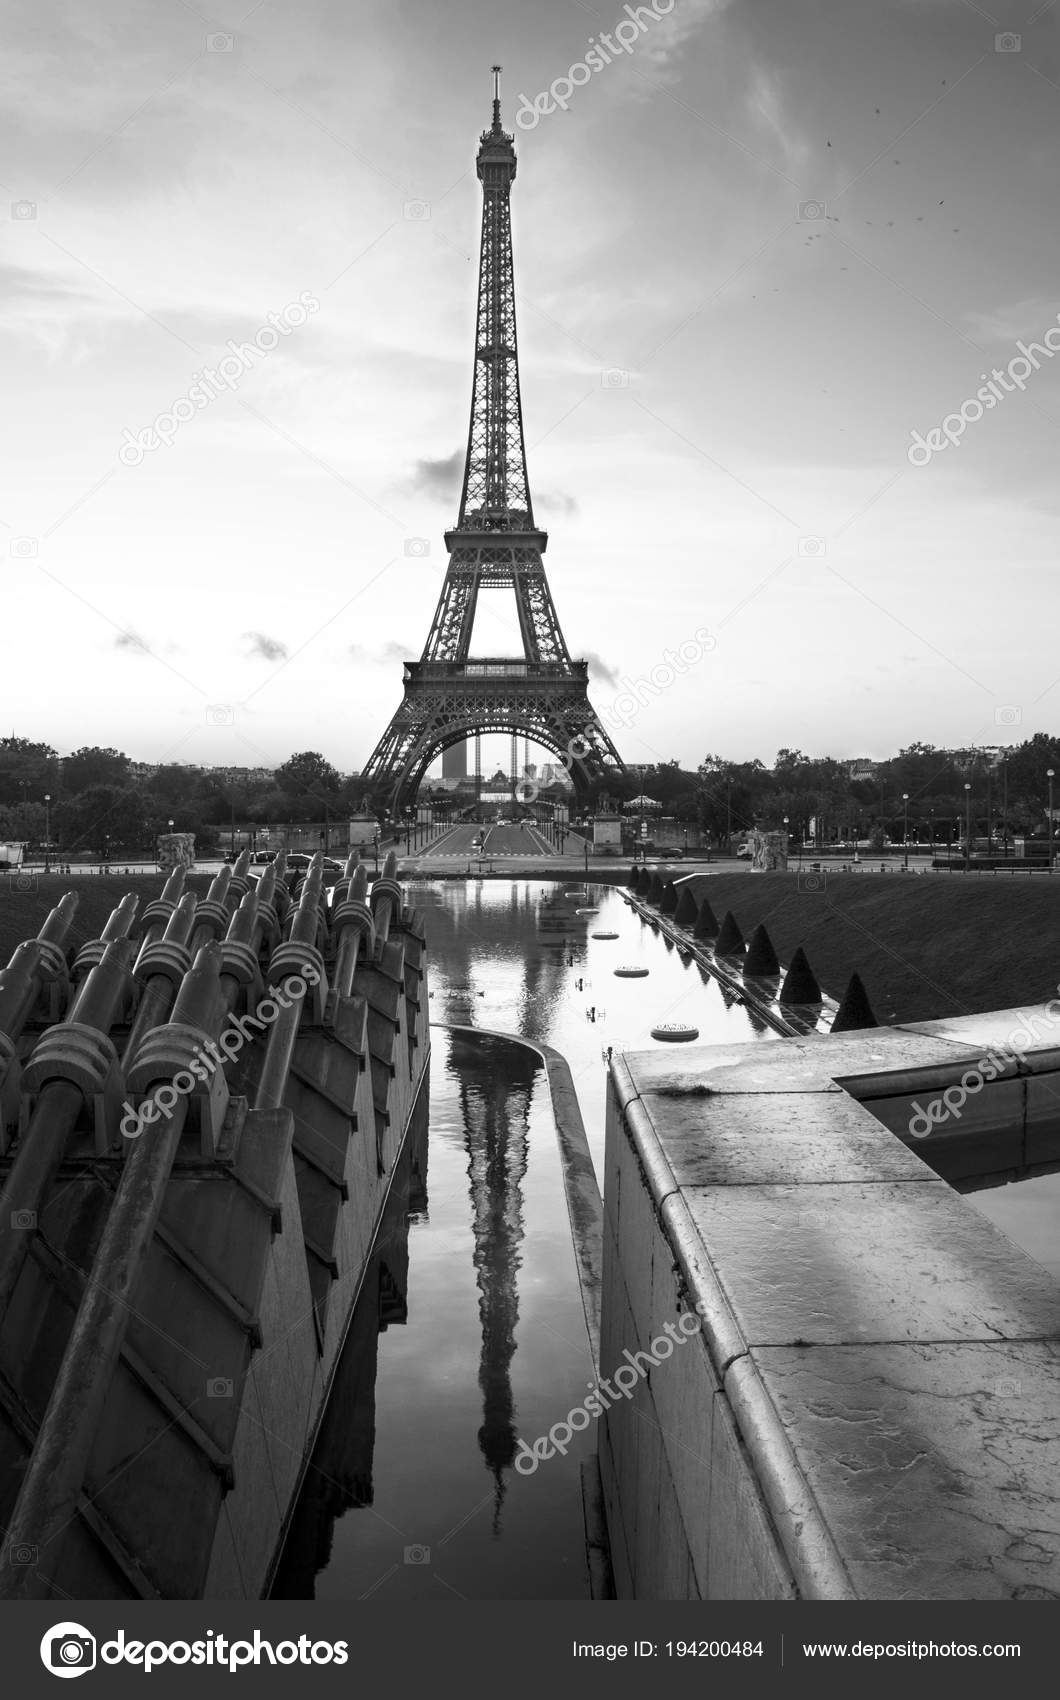 eiffel turm paris frankreich schwarz wei stockfoto albachiaraa 194200484. Black Bedroom Furniture Sets. Home Design Ideas